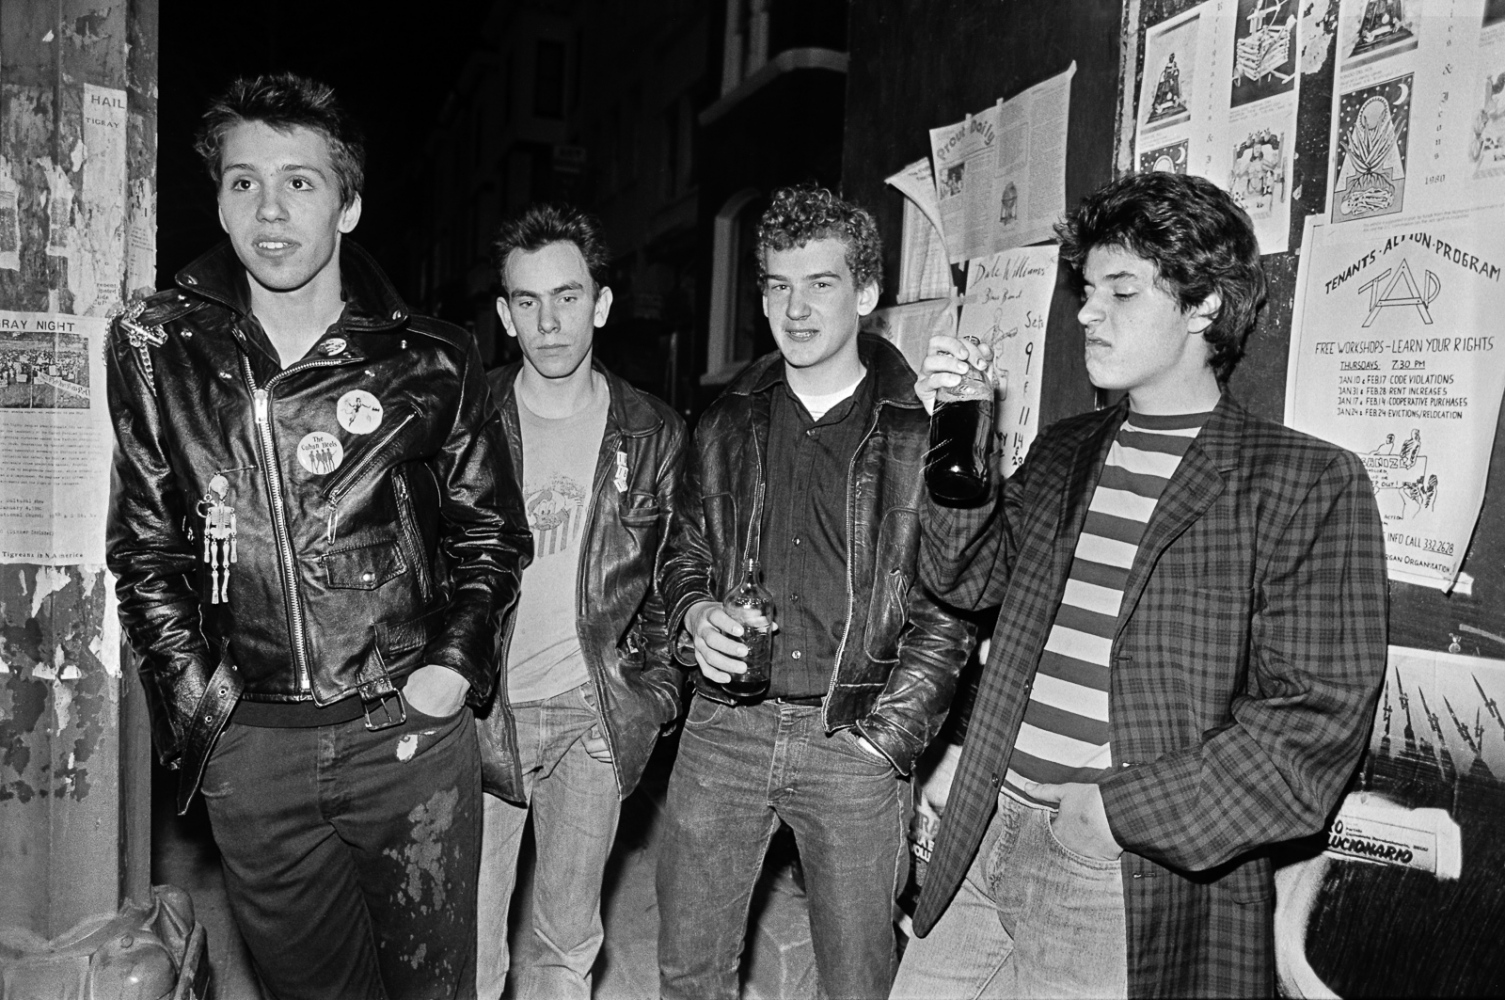 The Teen Idles: Nathan Strejcek, Jeff Nelson, Ian MacKaye, Geordie Grindle, 18th Street, Adams Morgan, 1/25/80